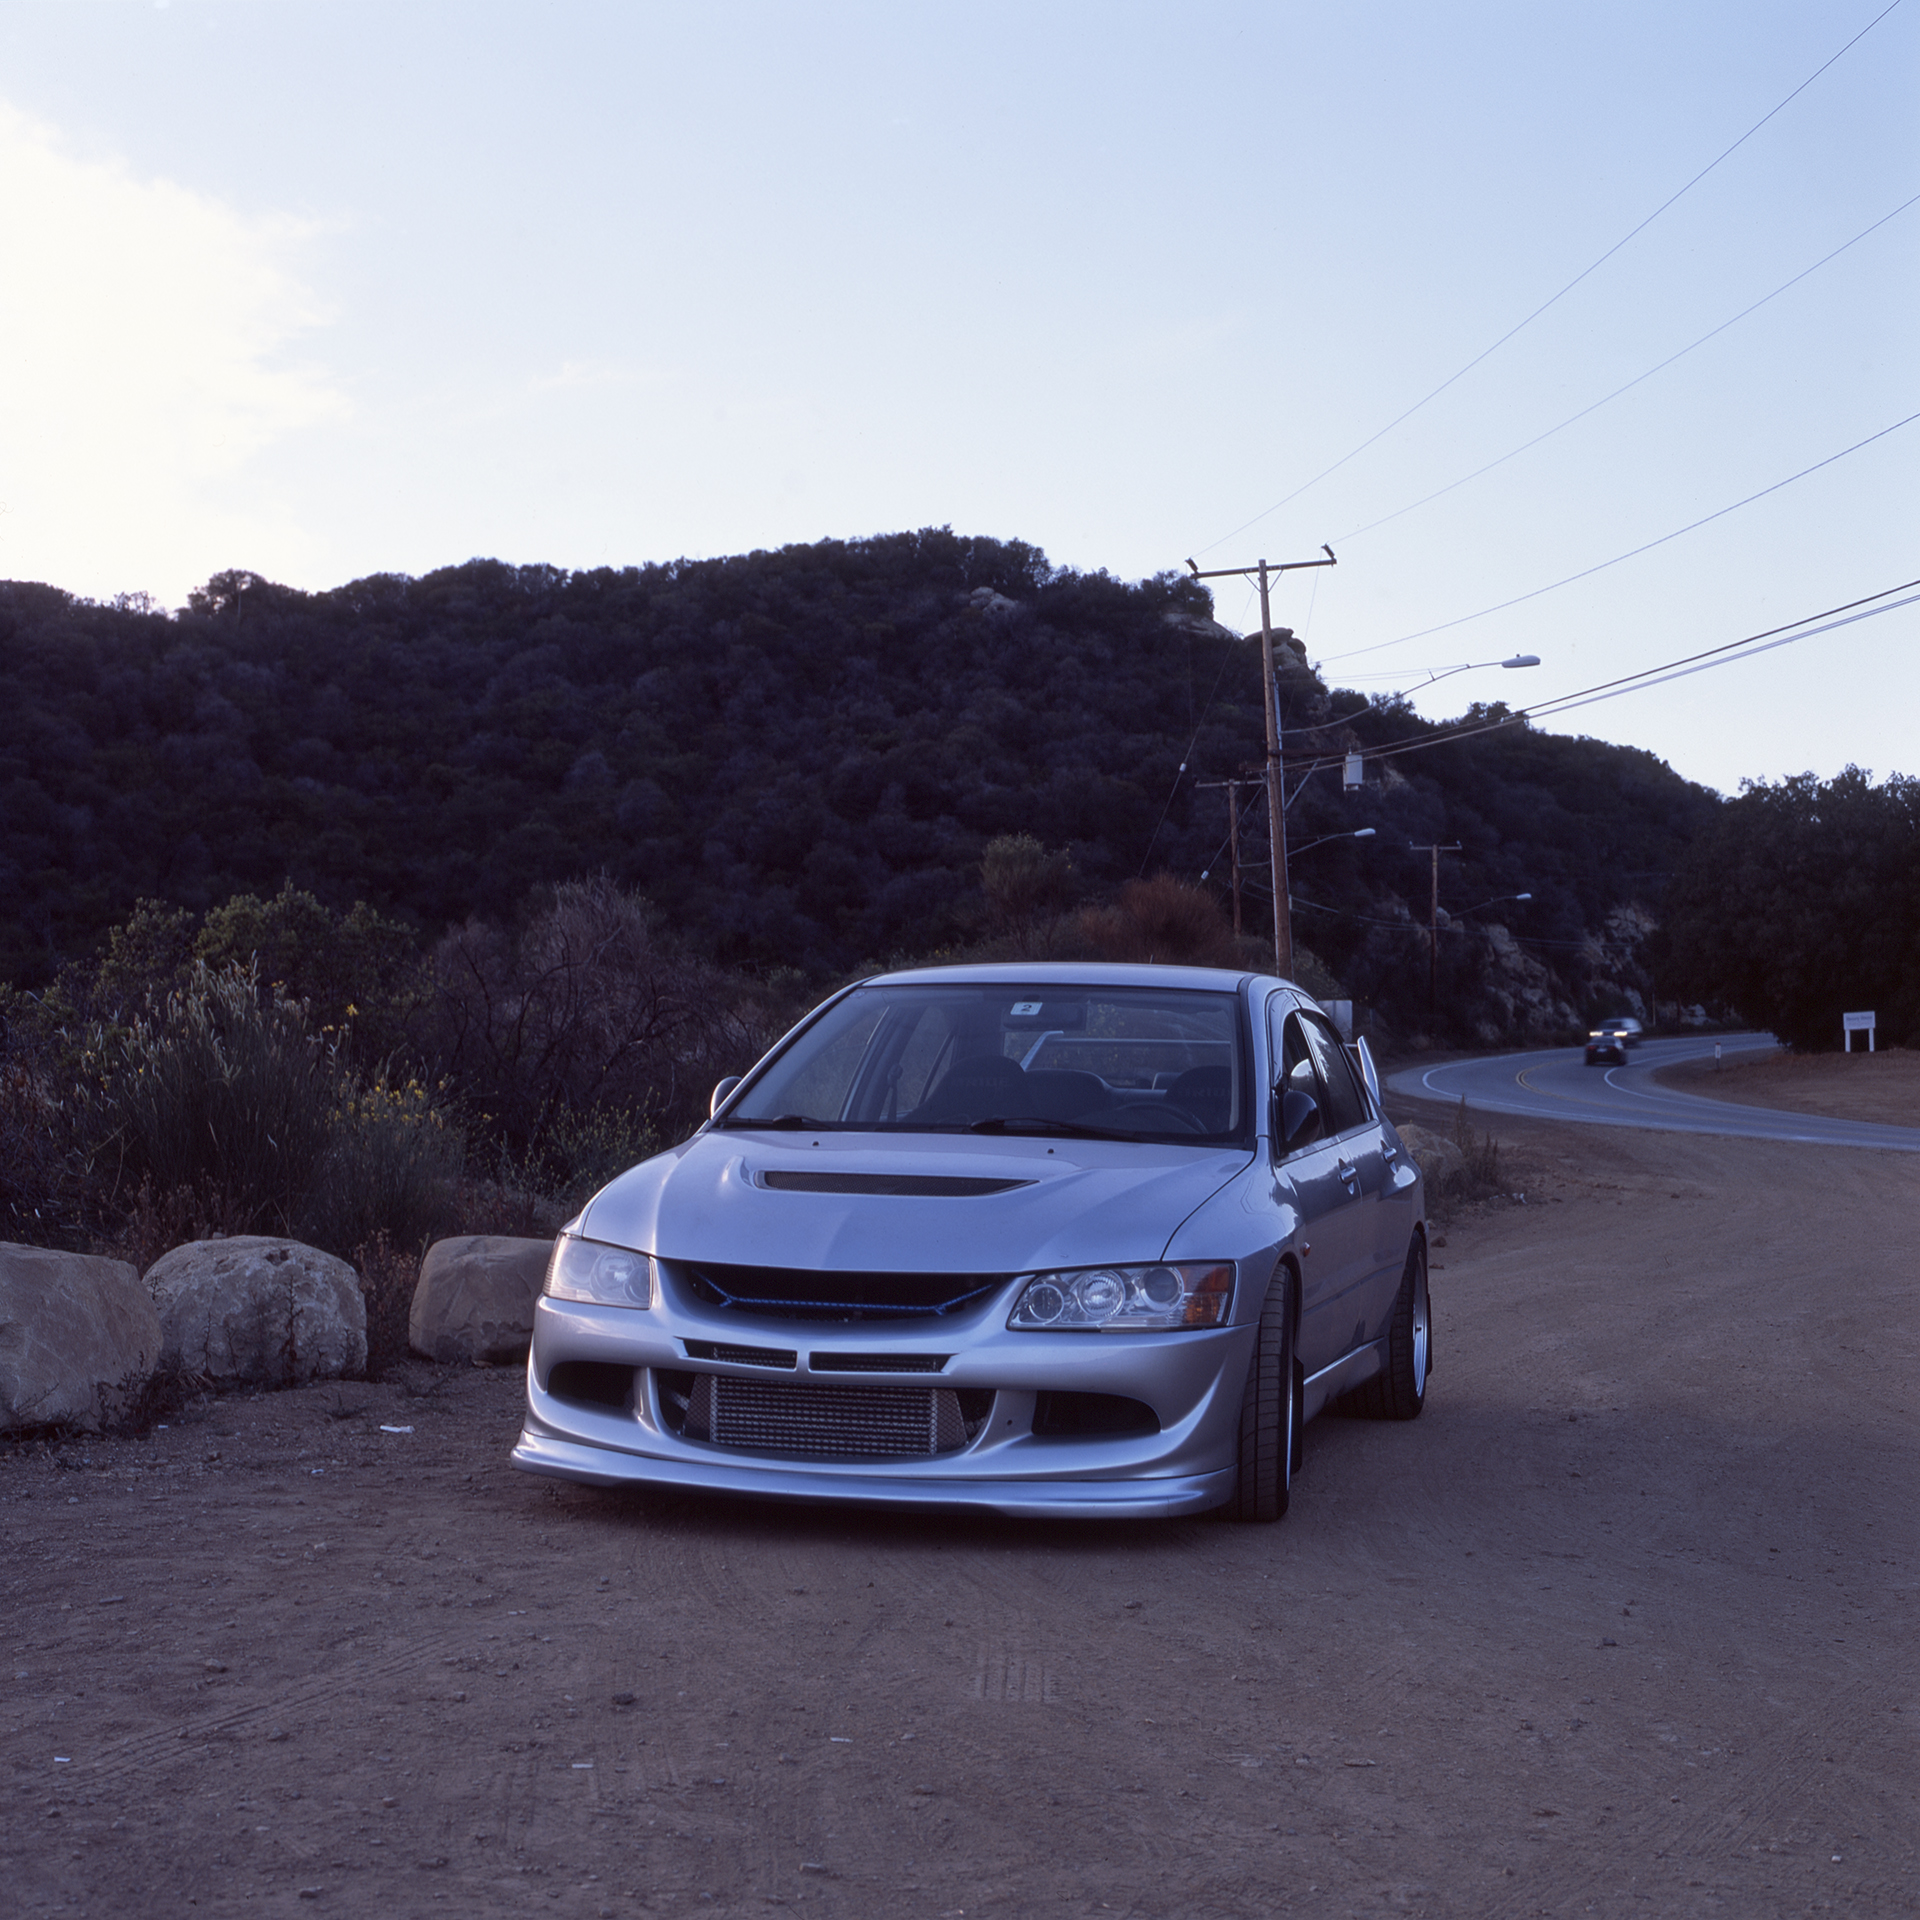 Evo parked at one of the dirt overlooks somewhere in the Malibu hills